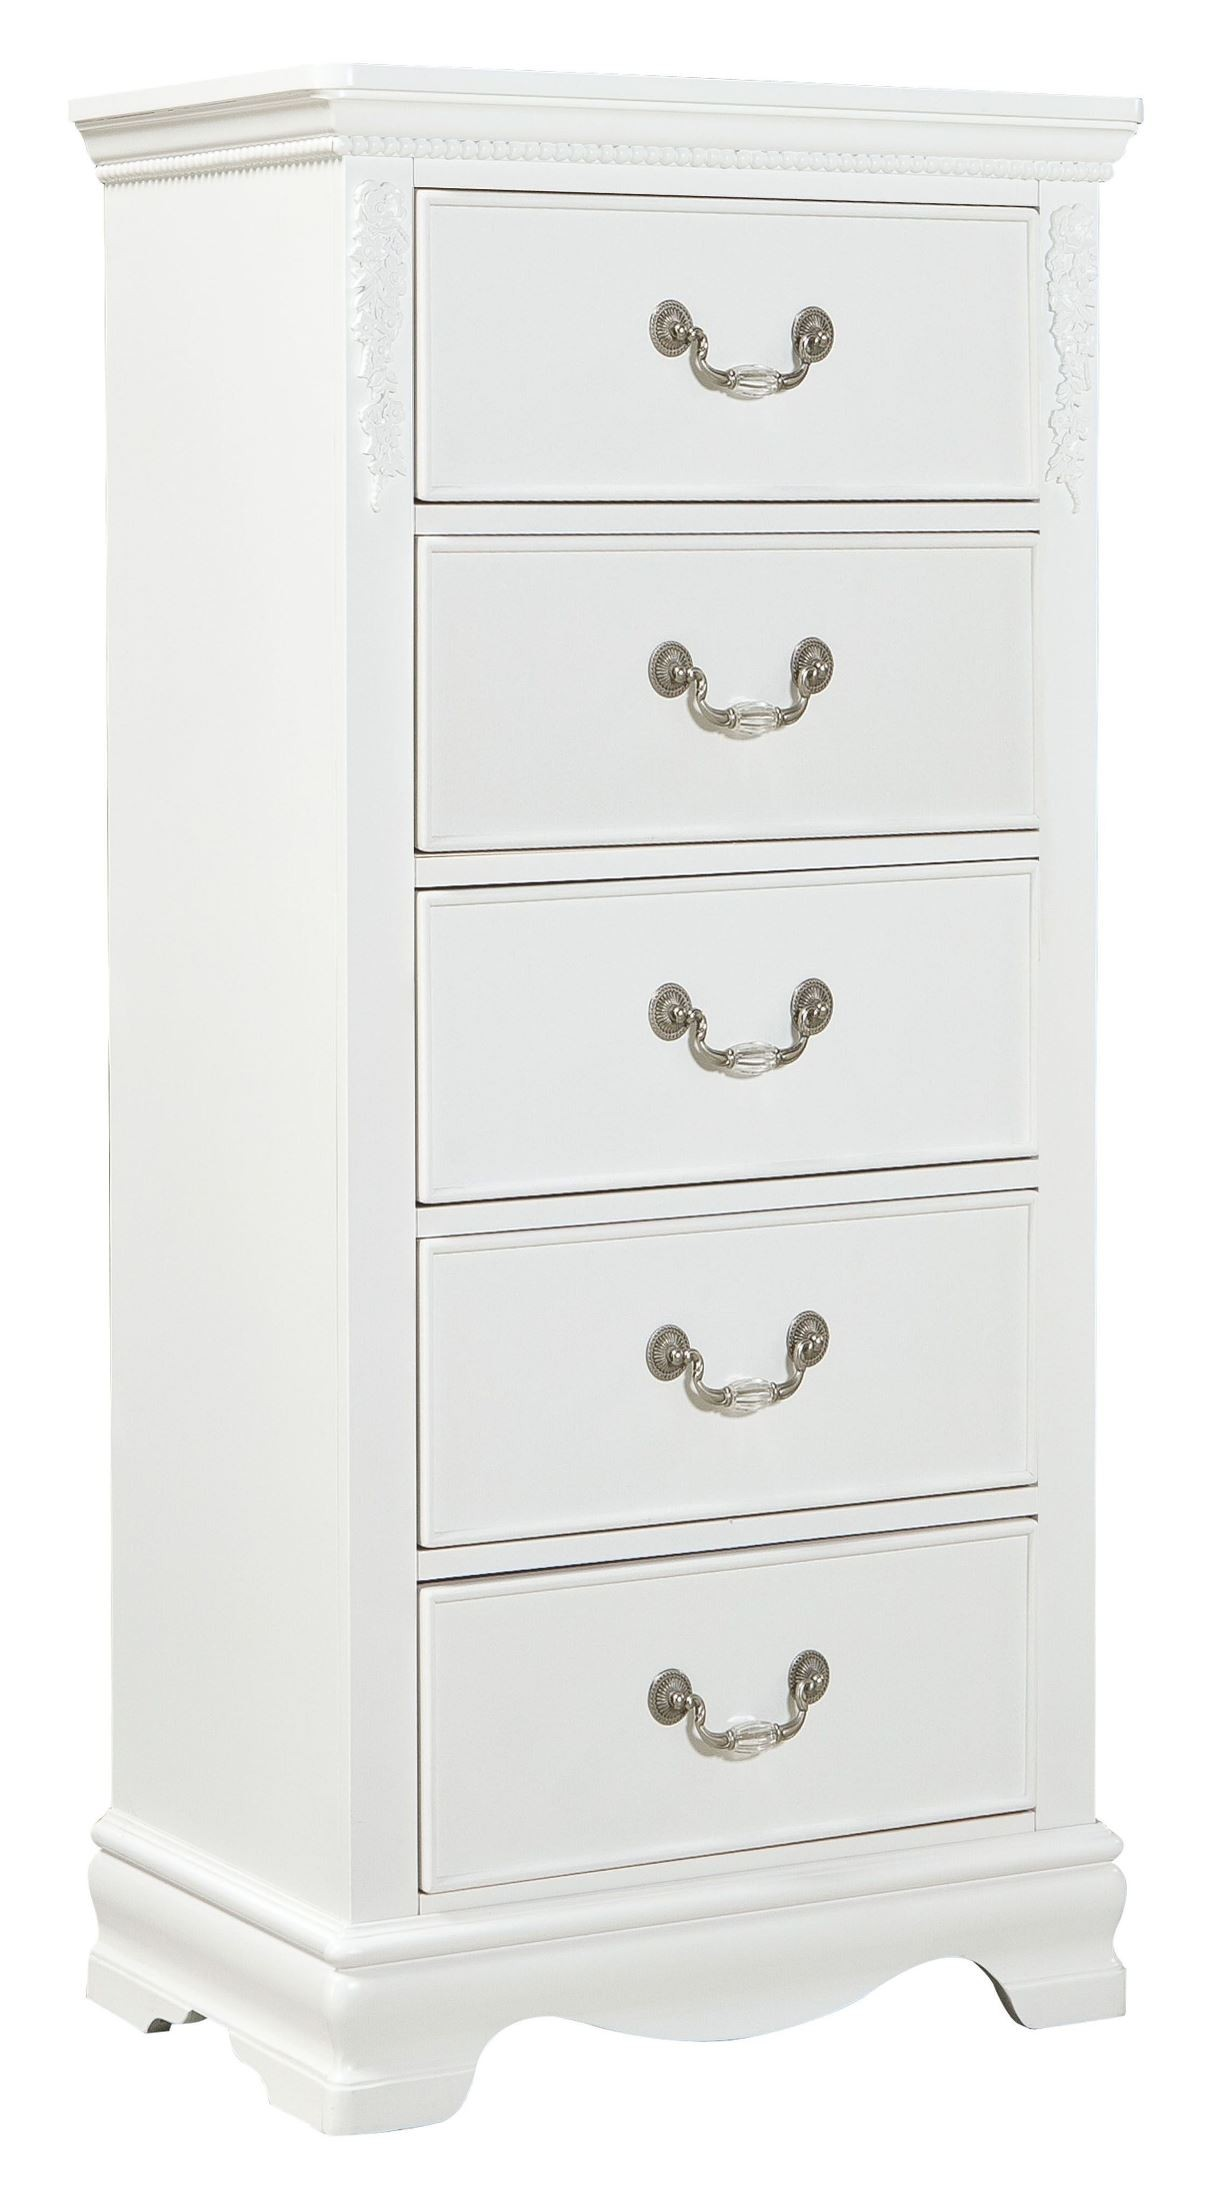 Bombe 94 dedans jessica clean white youth panel bedroom set from standard (94201